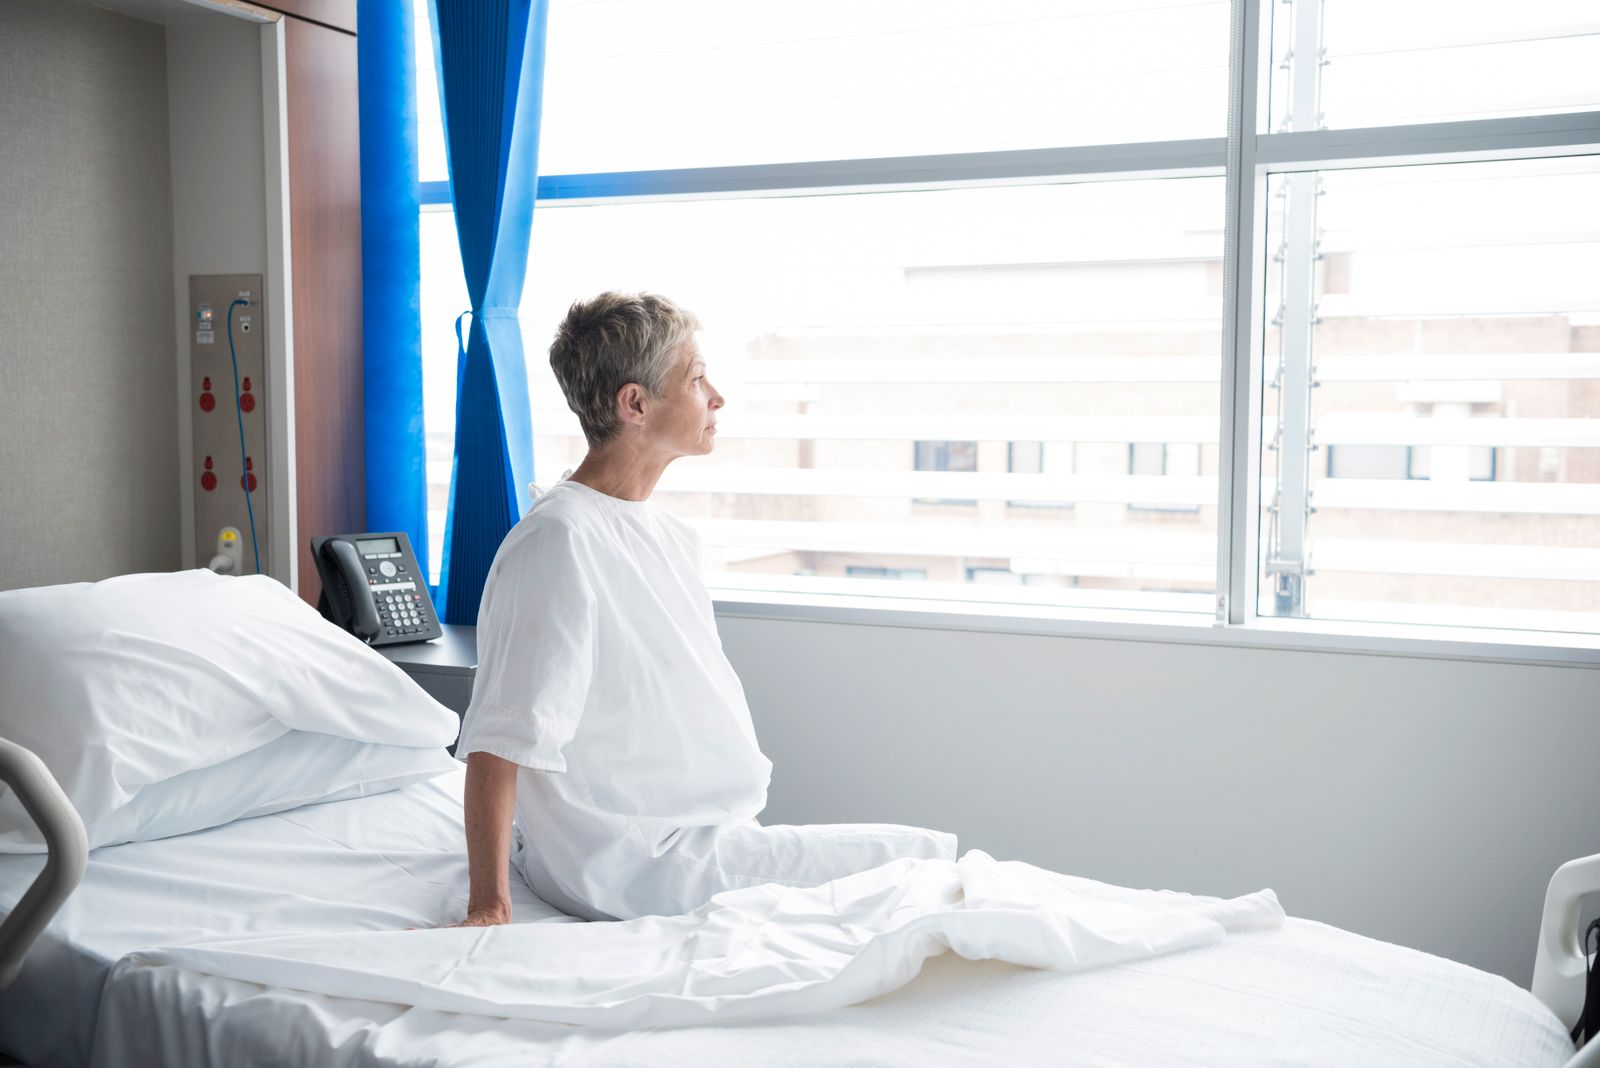 Senior woman sitting on hospital bed looking out of window